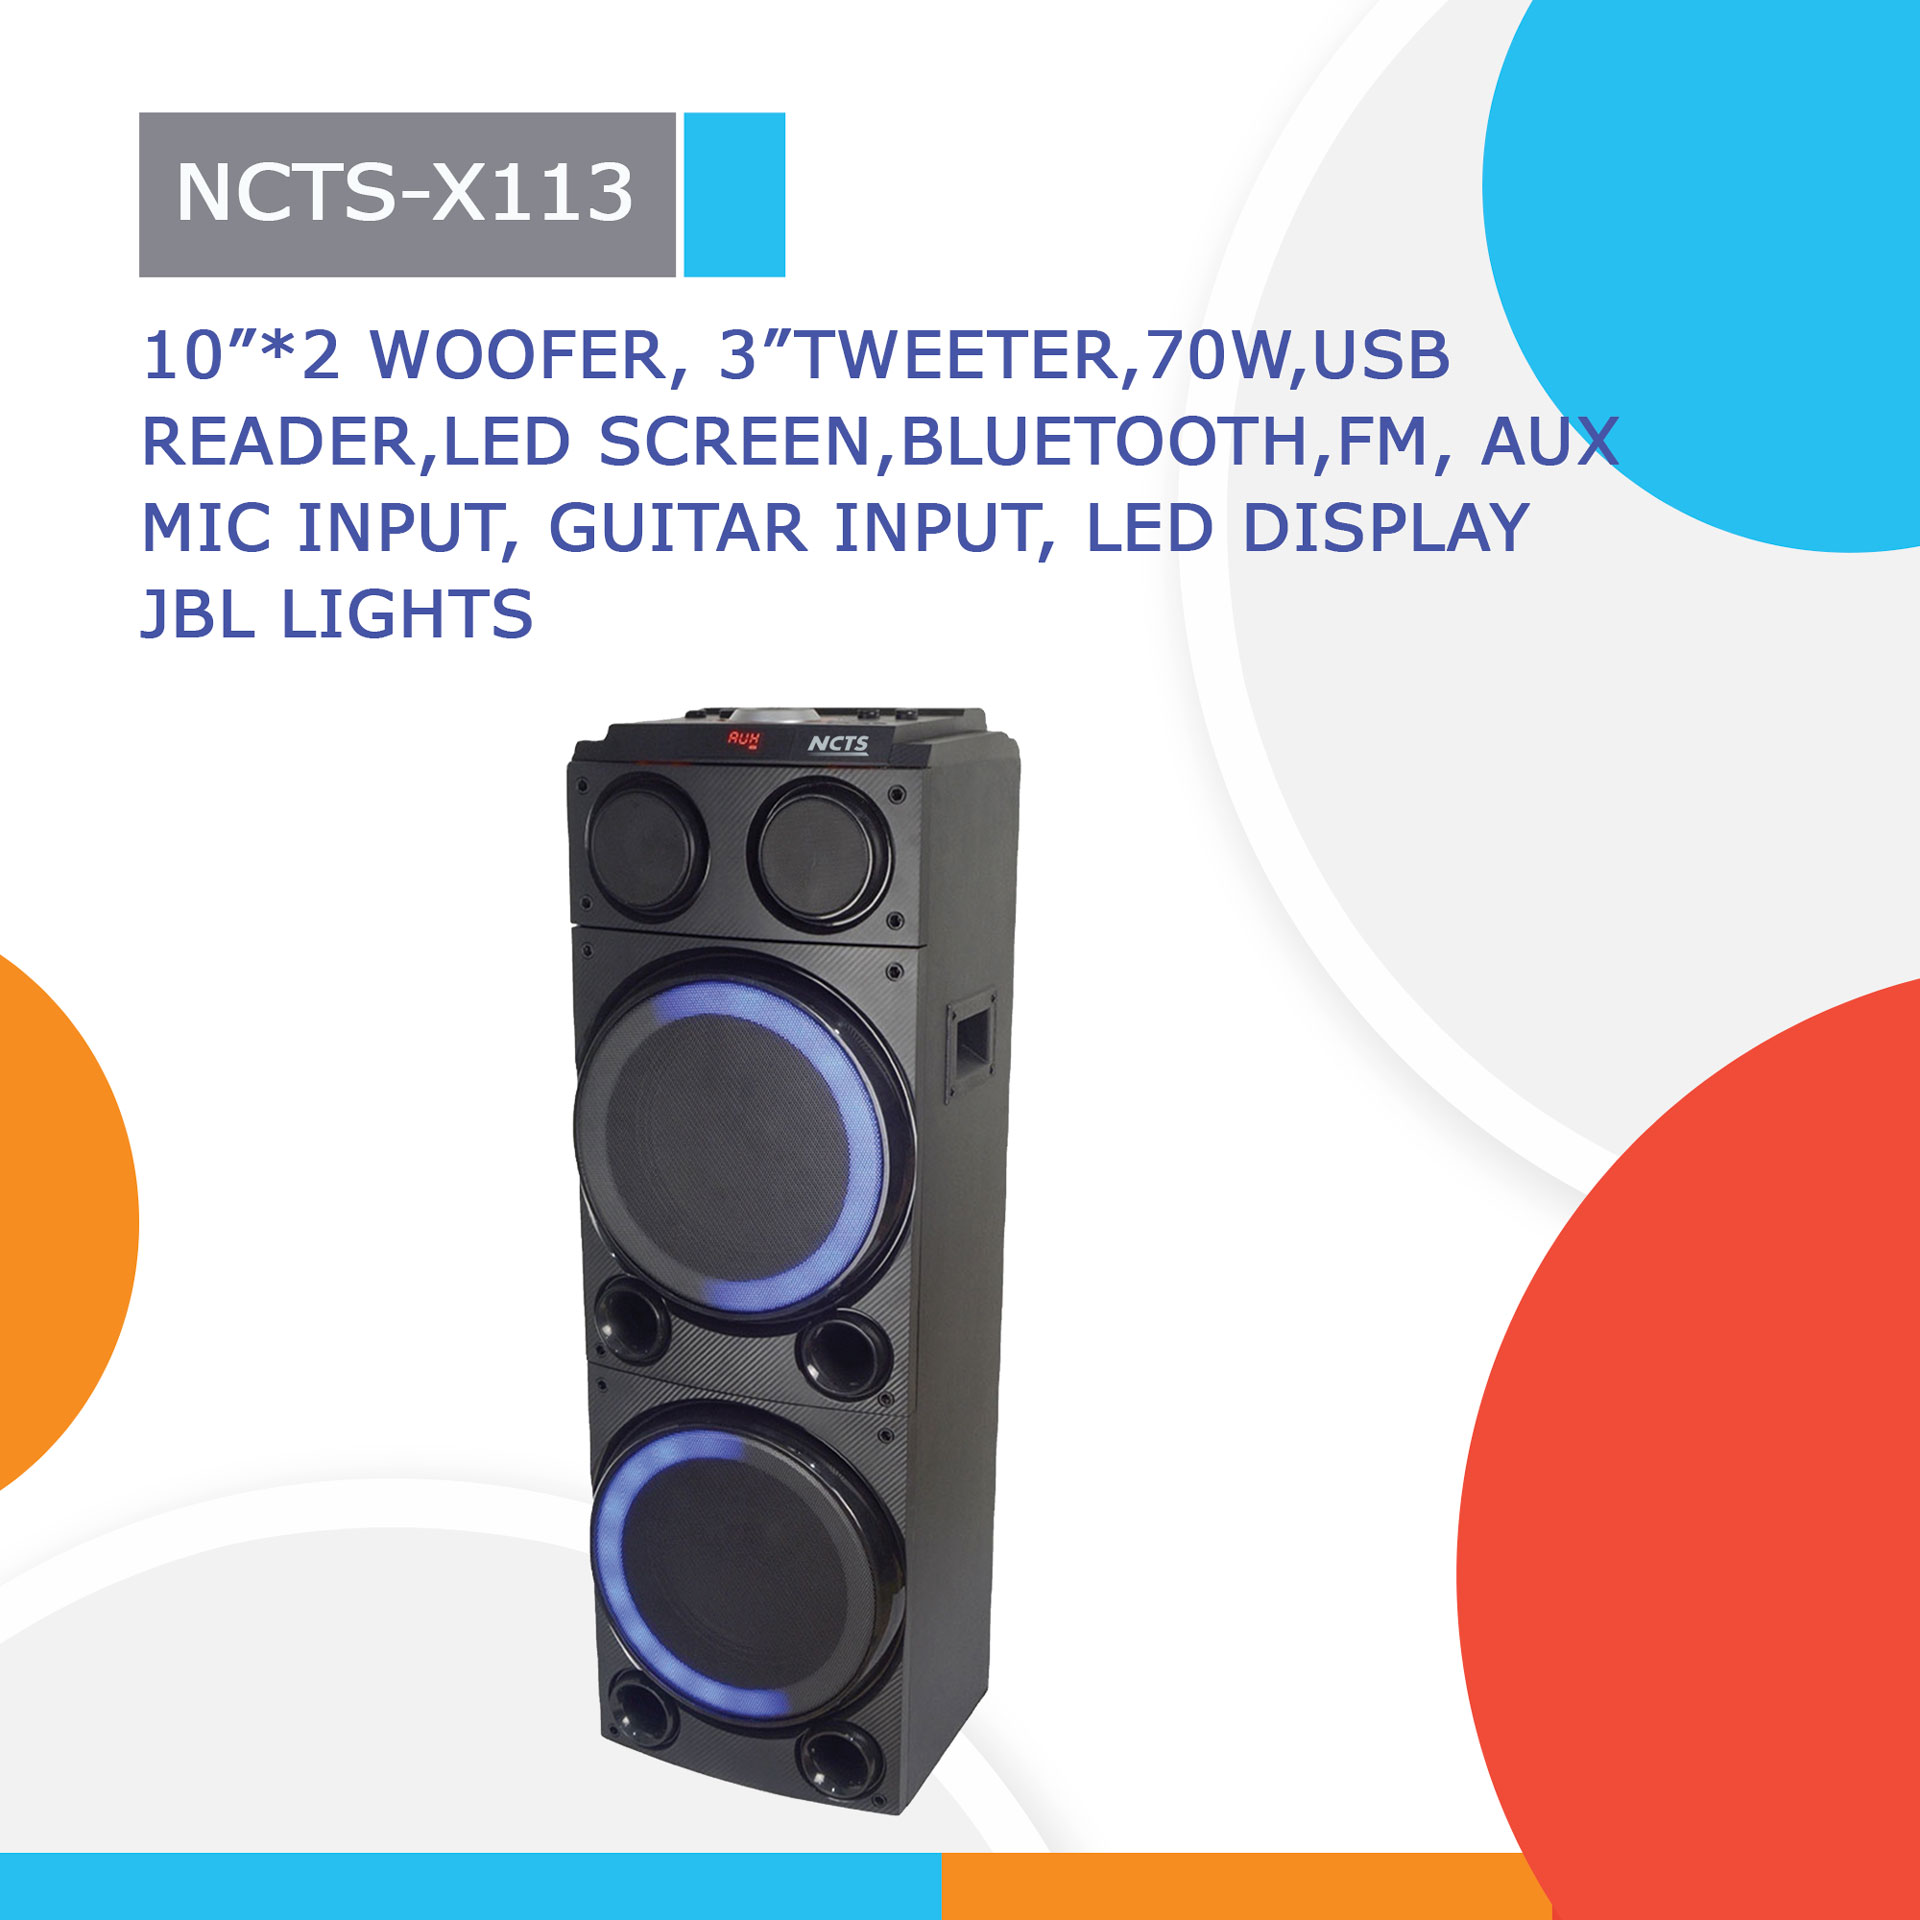 NCTS-X113